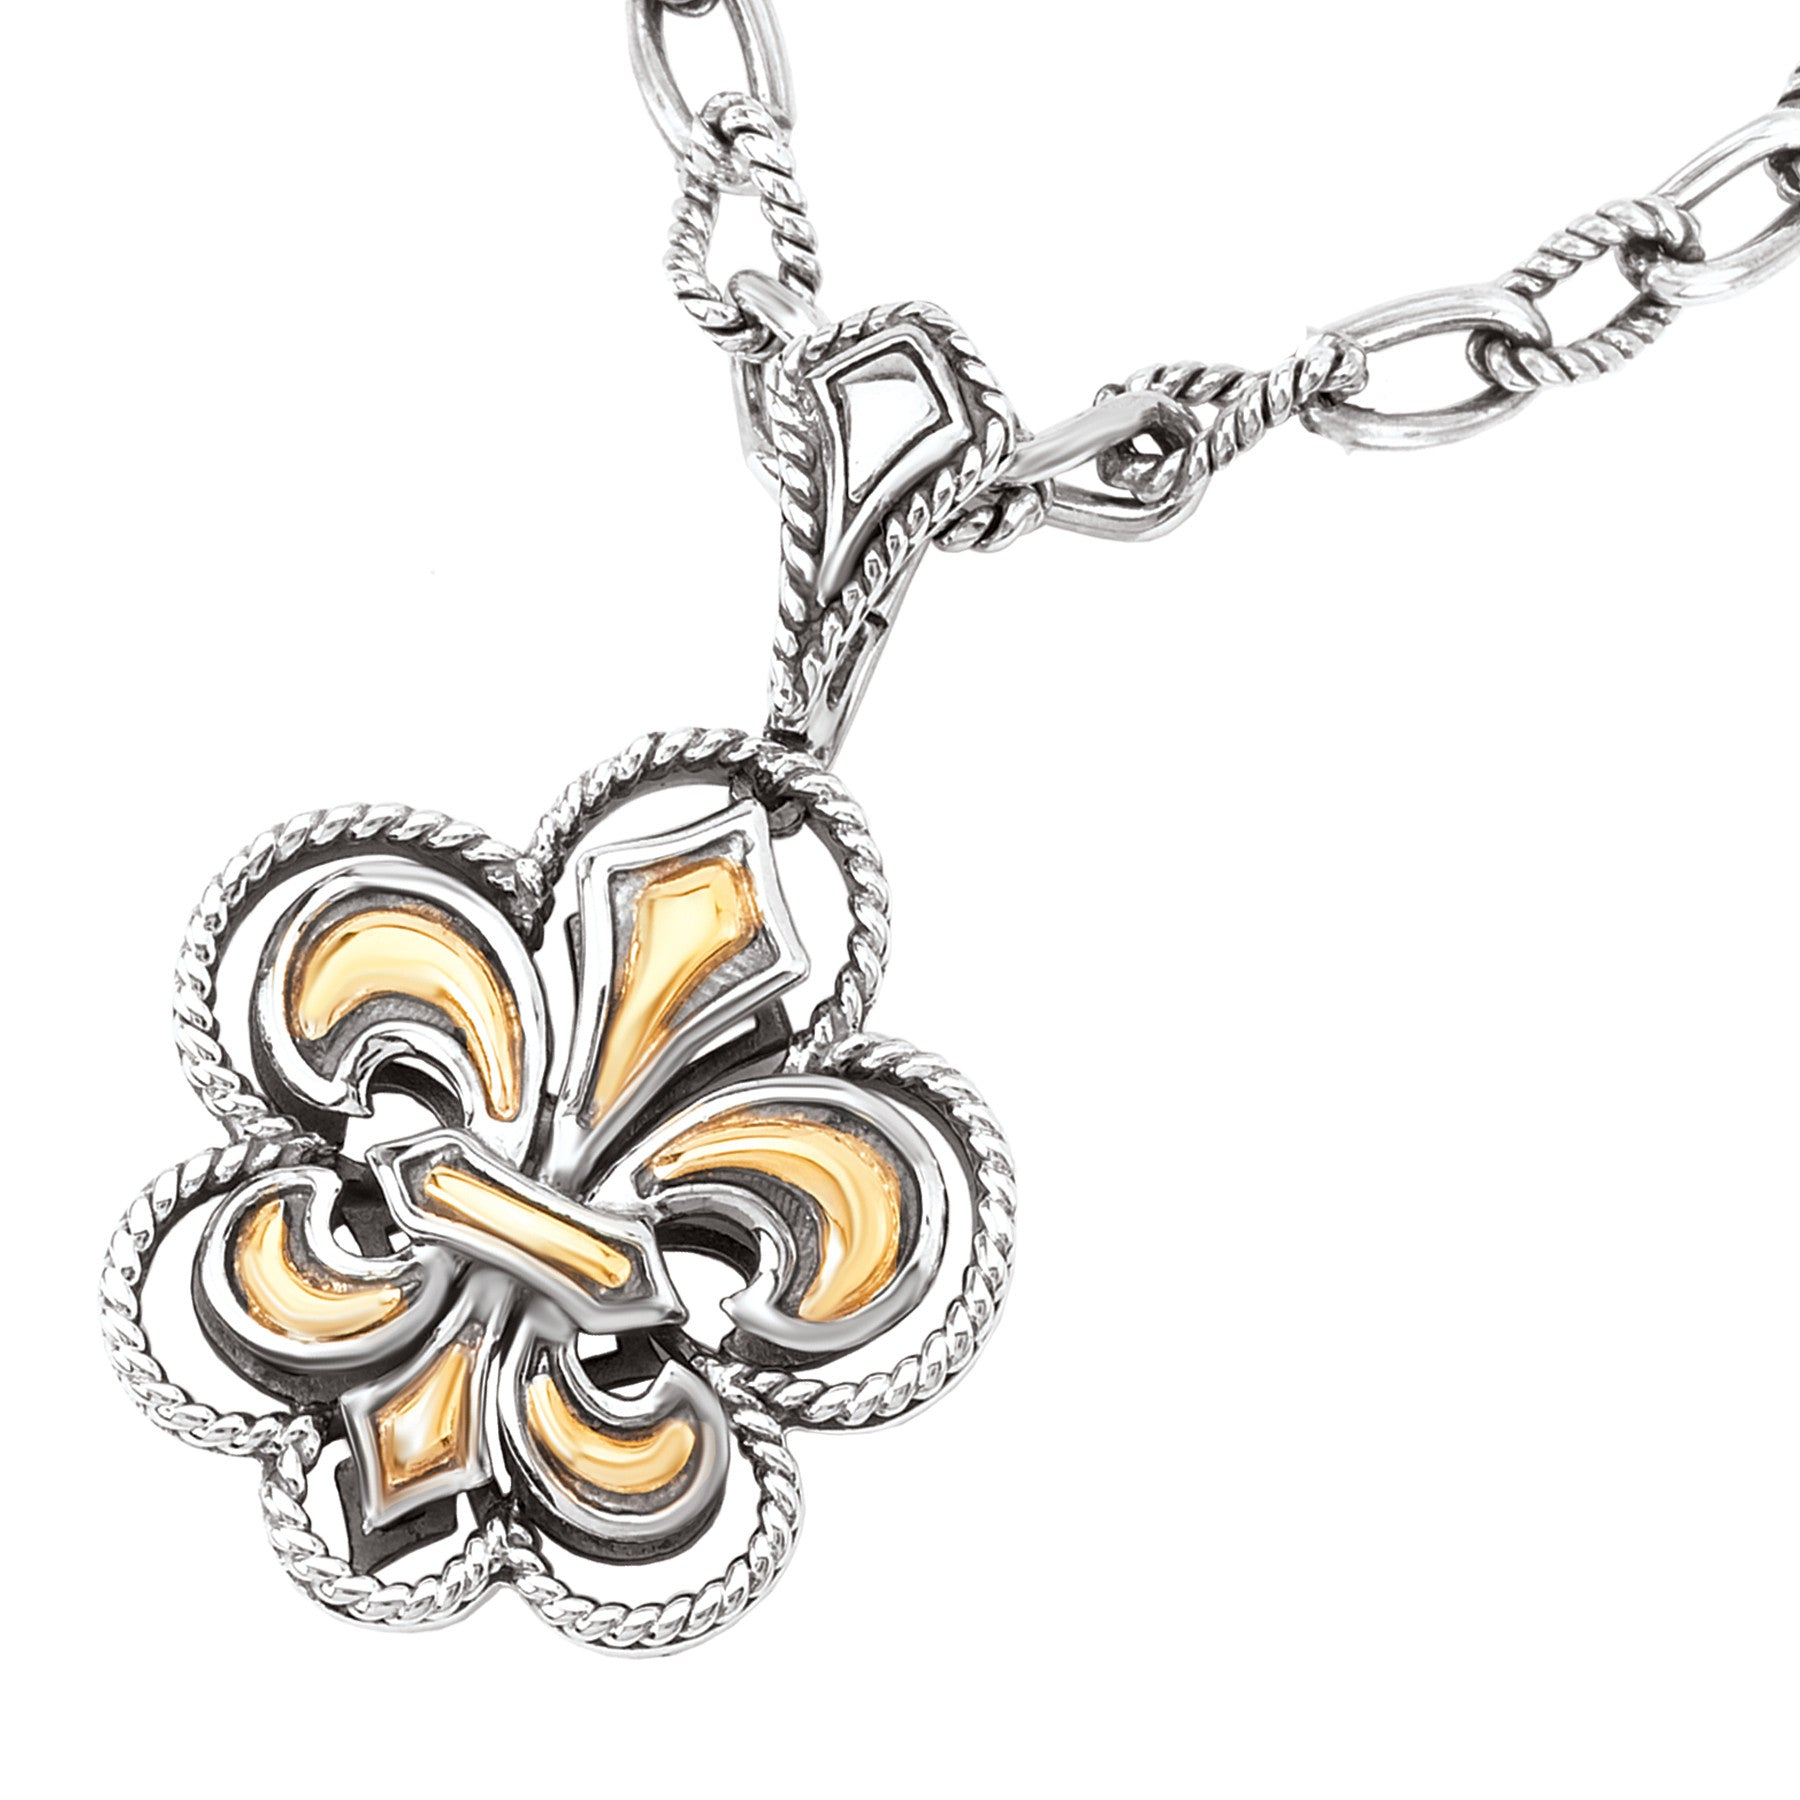 Sterling Silver and 18k Yellow Gold Fleur De Lis Pendant